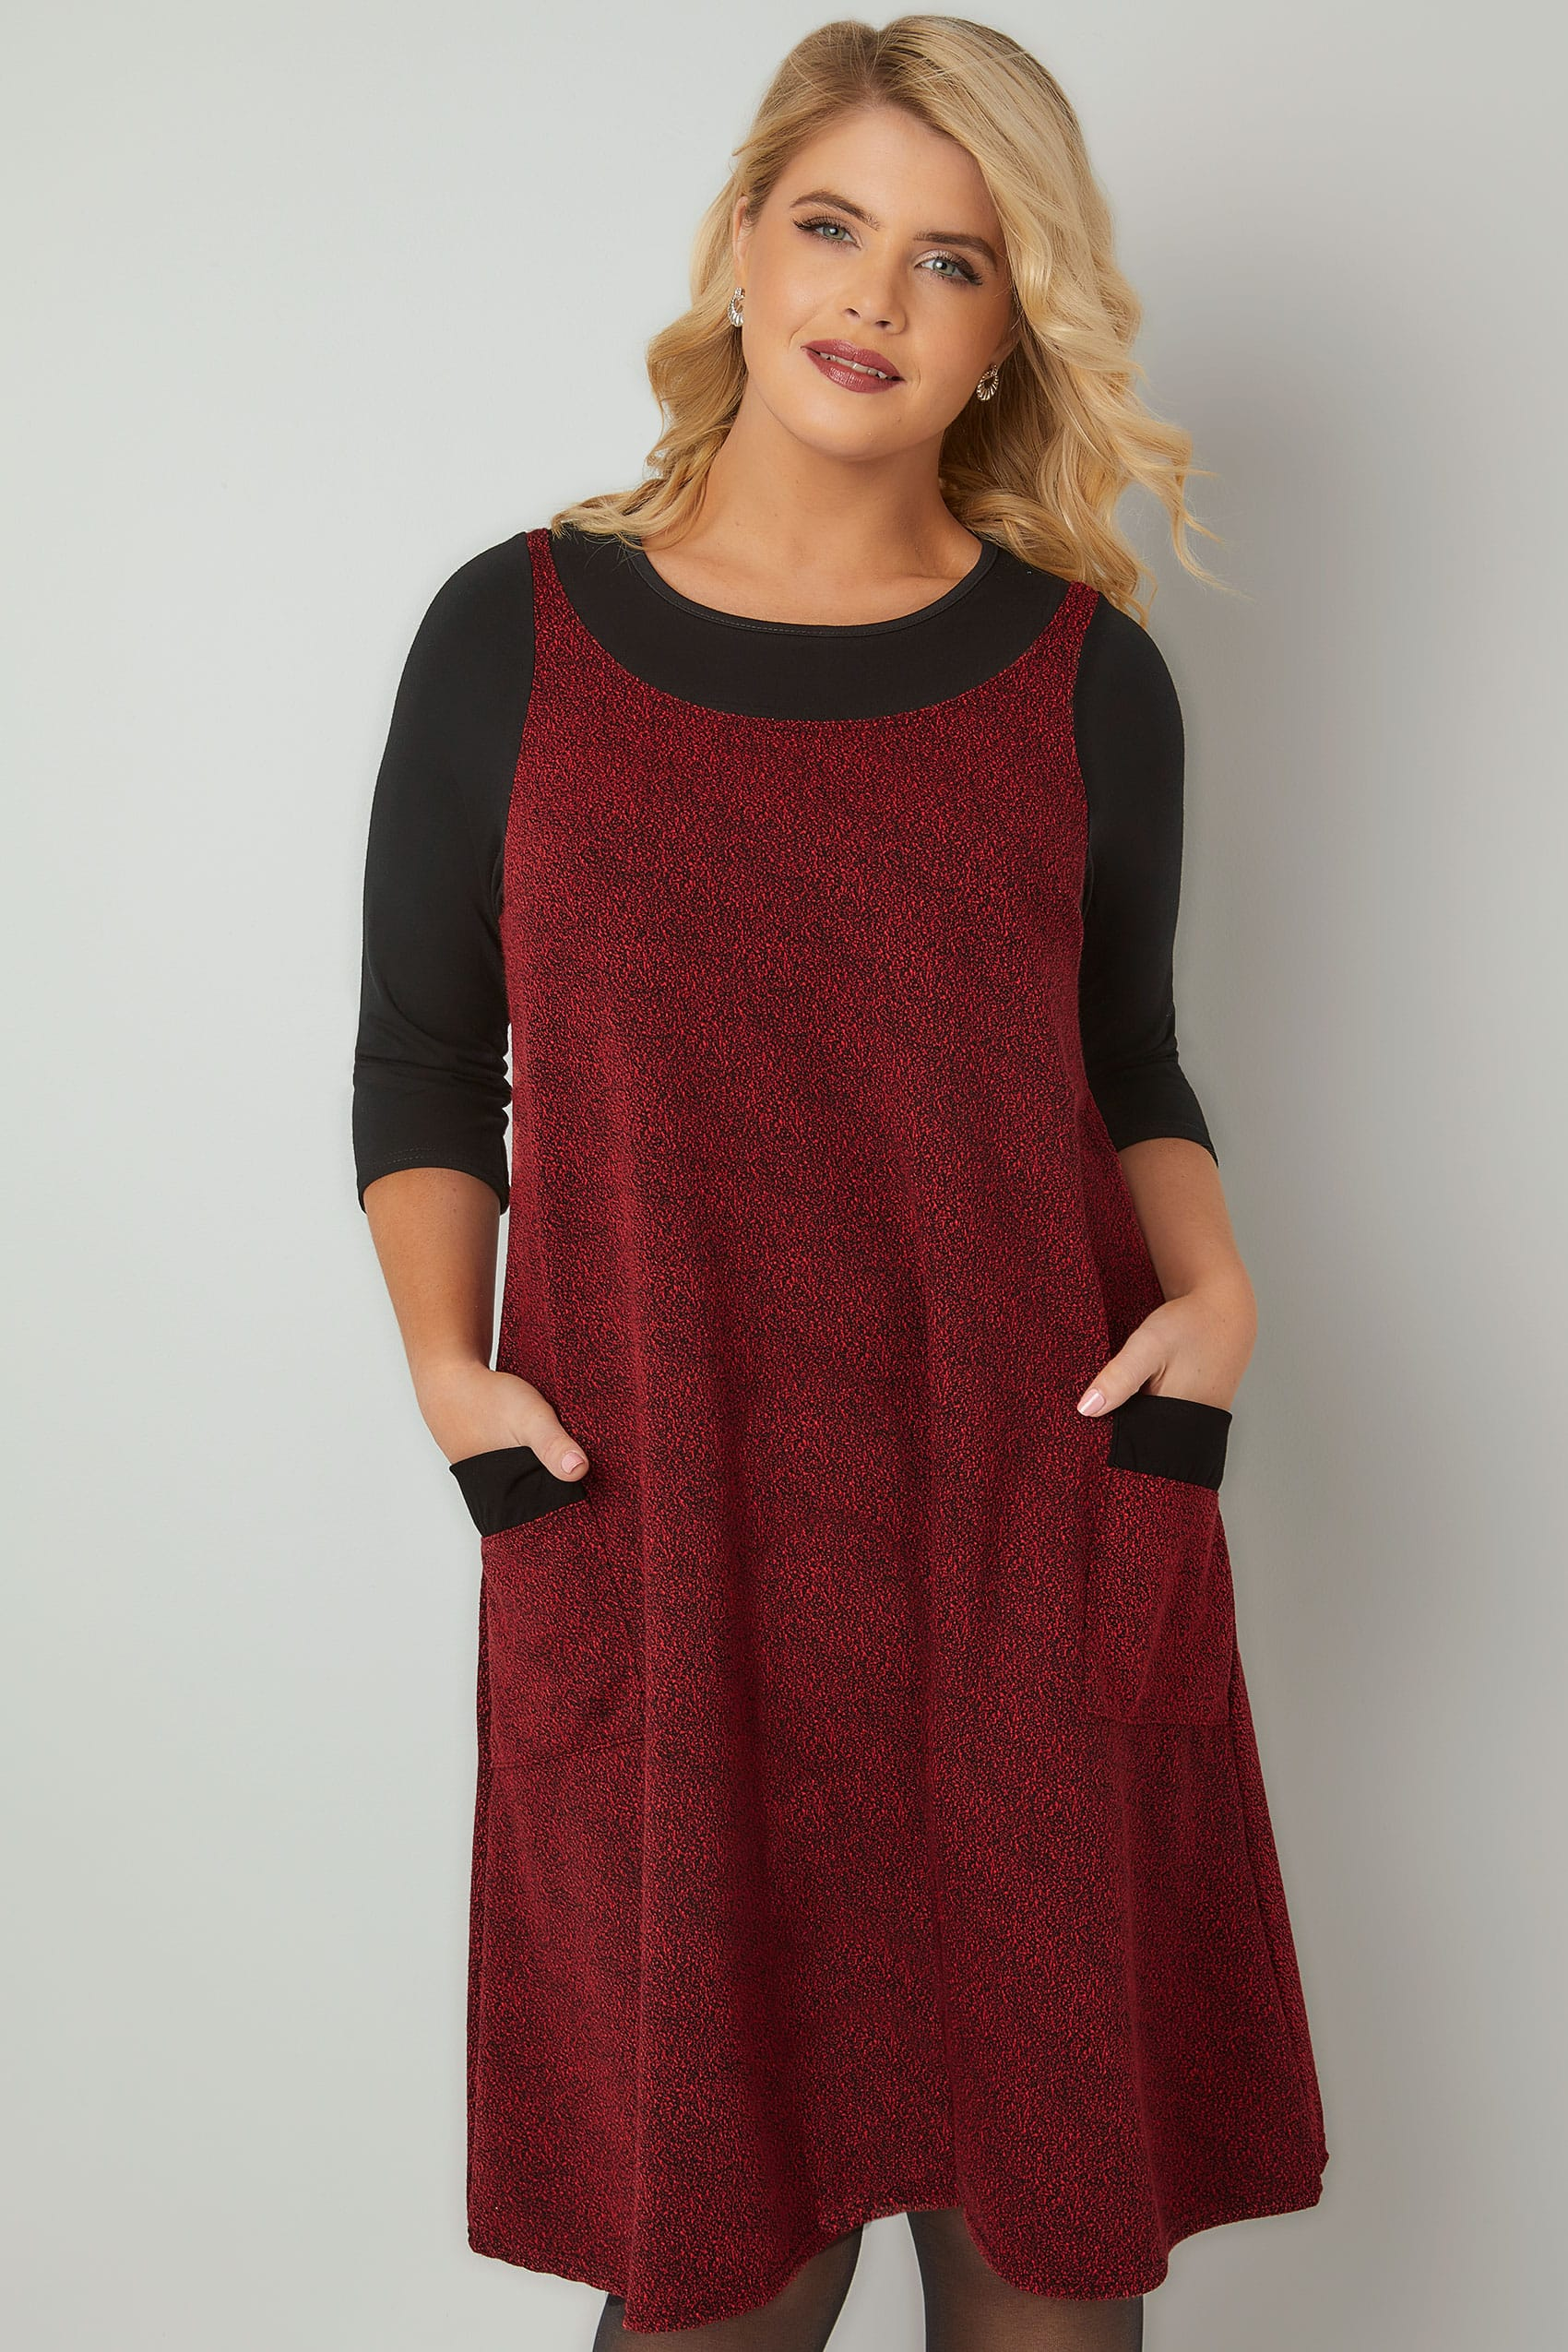 Red Textured Mock Pinafore Dress With Two Pockets, Plus size 16 to 36